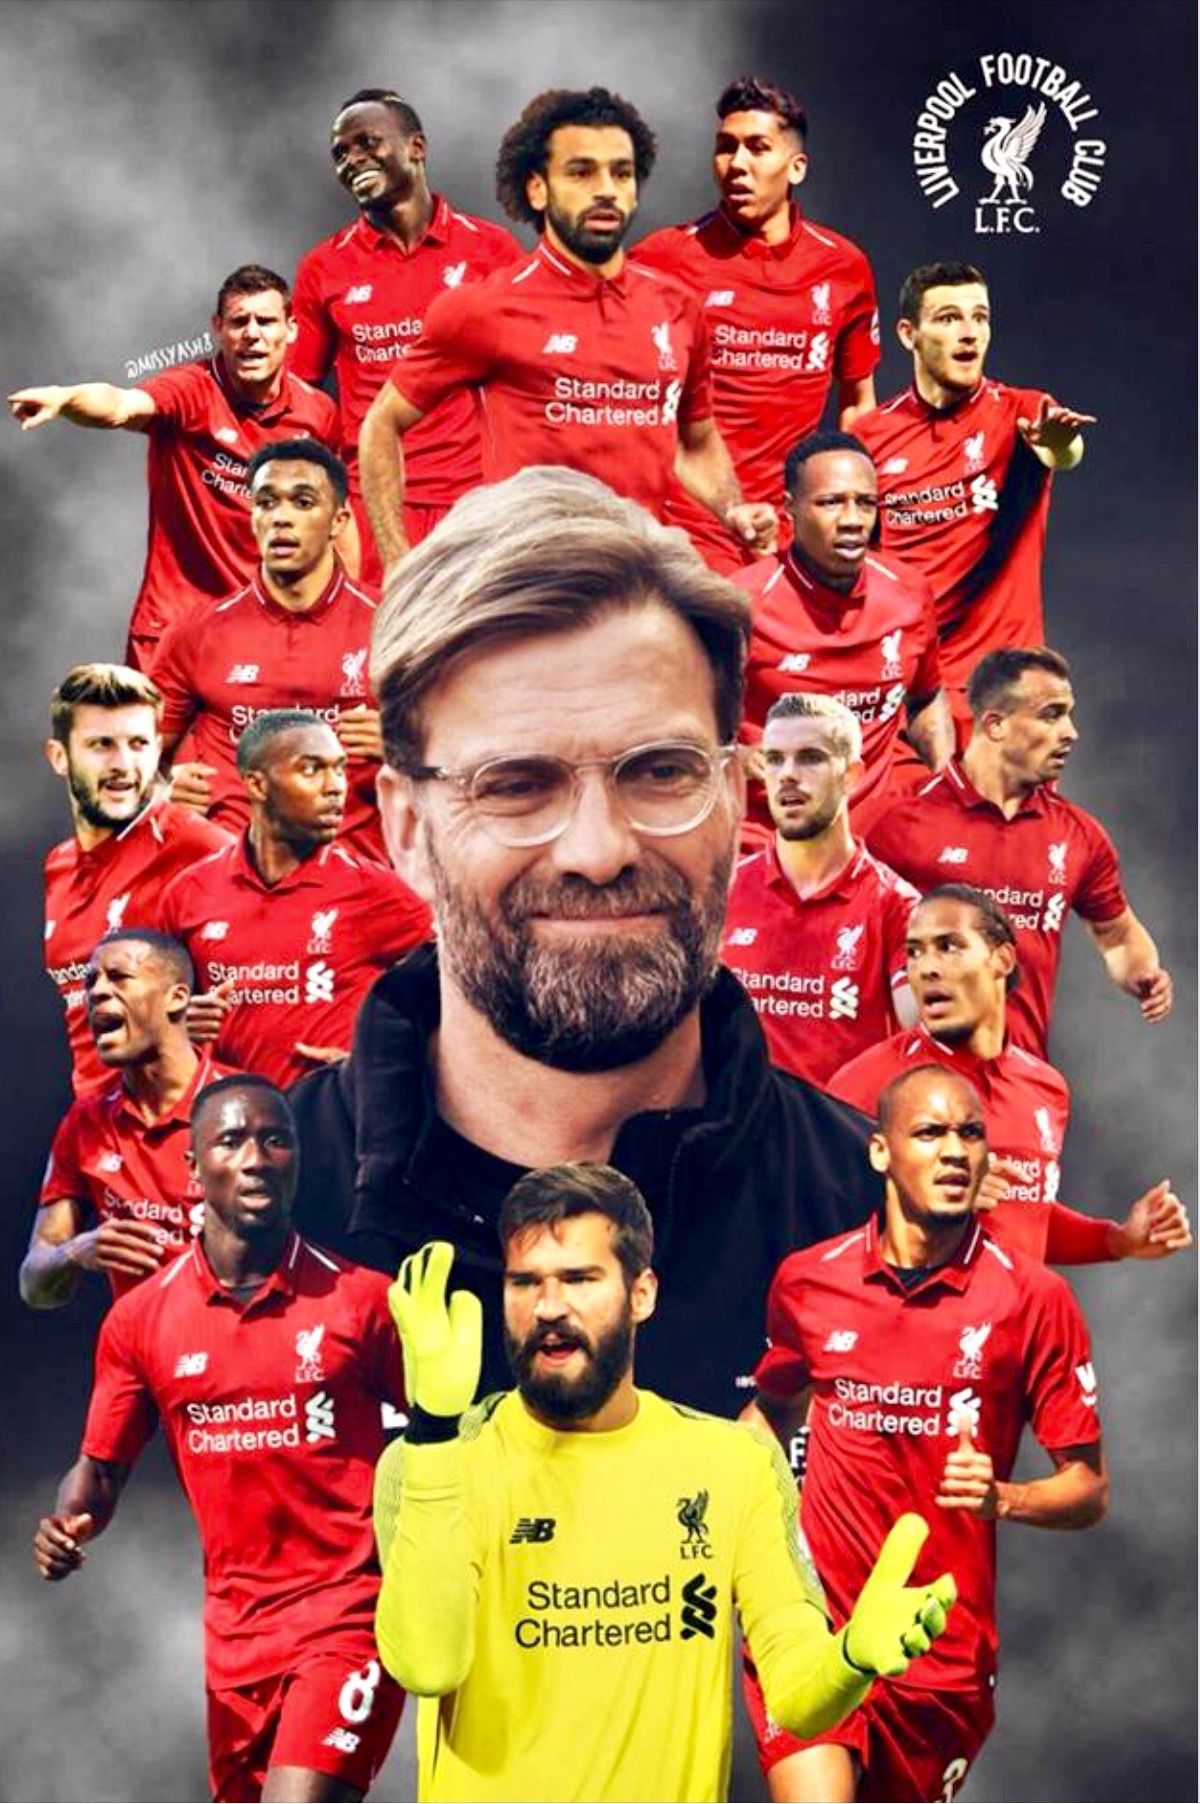 Download Liverpool Wallpaper 2020 Cikimm Com